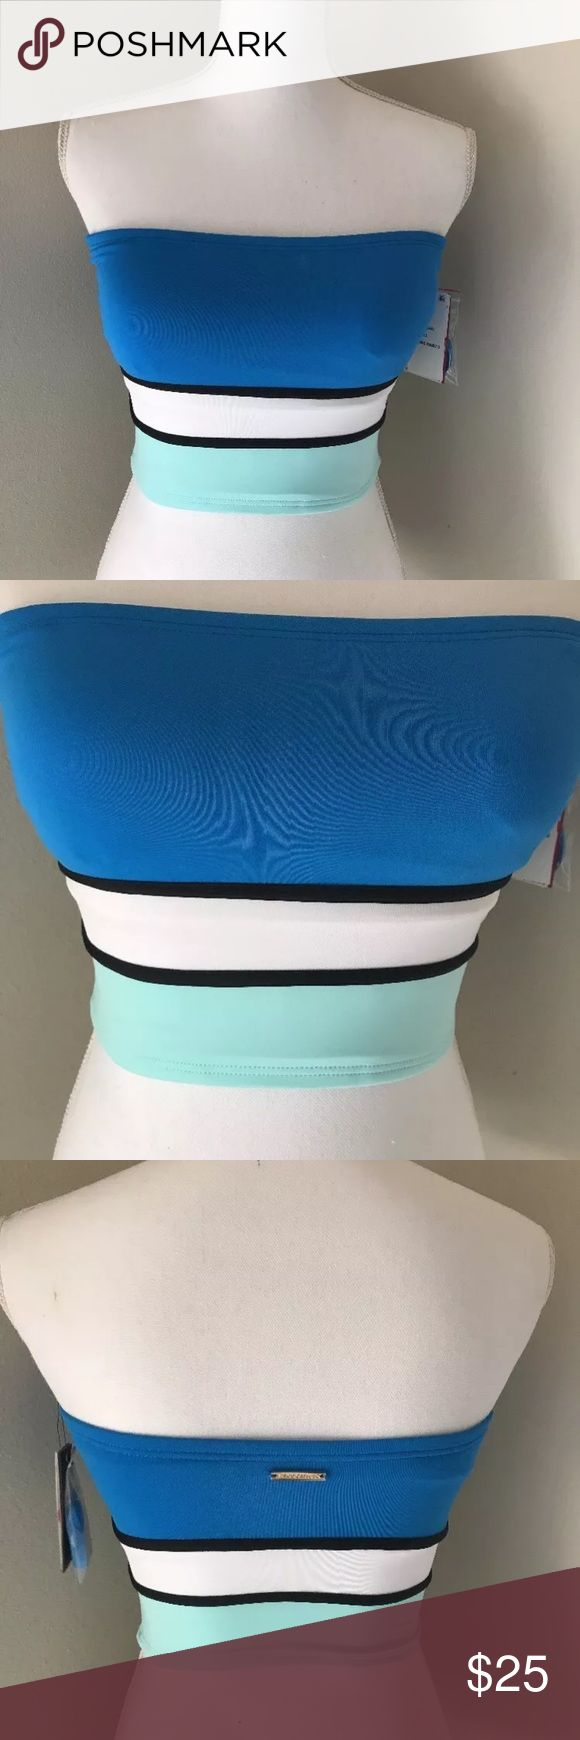 NWT Vince Camuto Bandeau Crop Top Swimsuit Blue New with tags Vince Camuto color block bandeau style bathing suit top with a built in bra and a removable strap size x-small. This bathing suit top would pair perfectly with white or black bottoms. Retails for $62.00. Vince Camuto Swim Bikinis